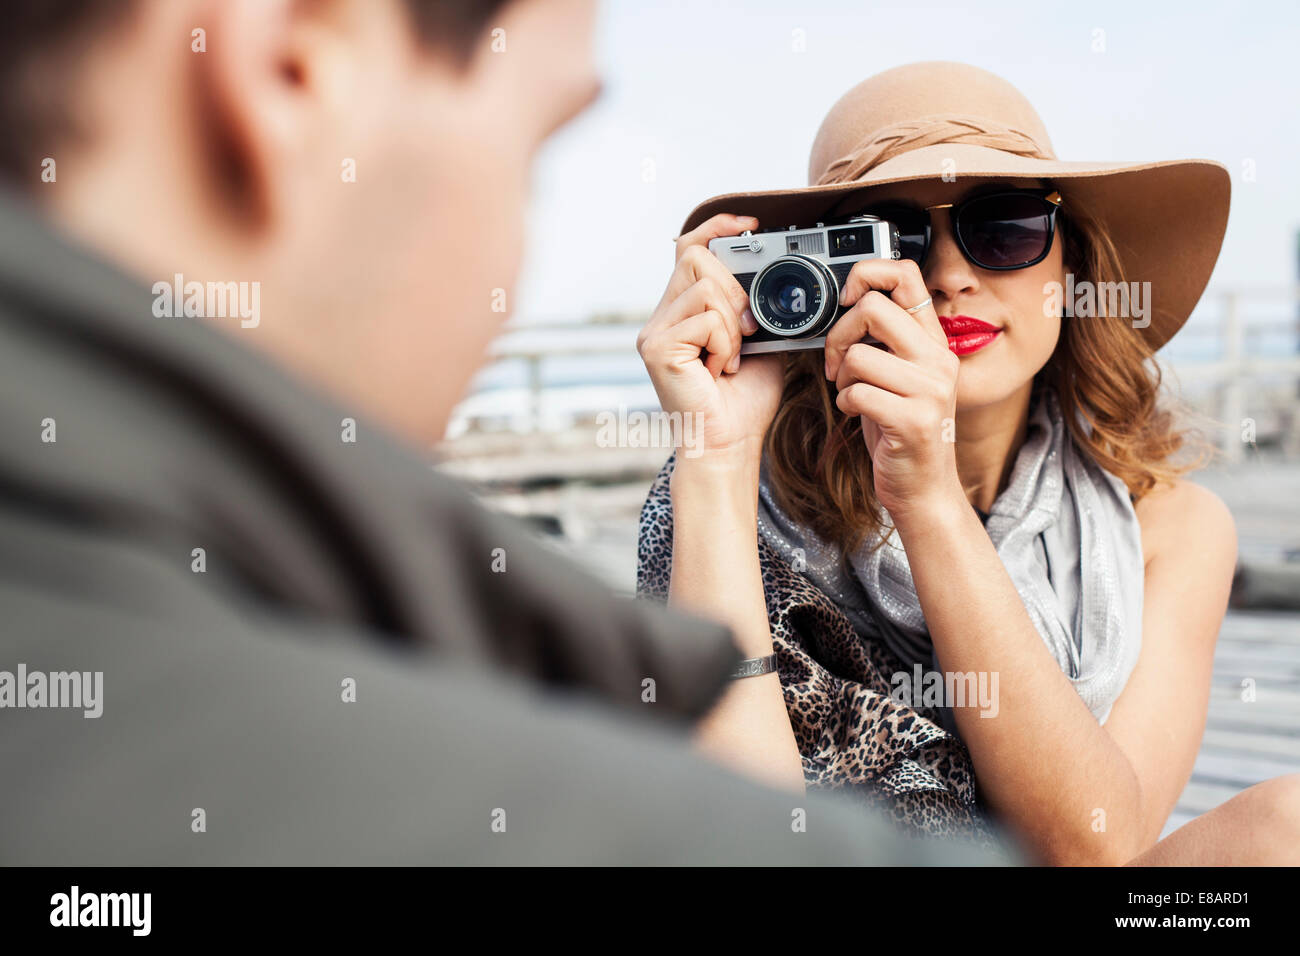 Young woman photographing boyfriend on coastal pier, Cape Town, Western Cape, South Africa - Stock Image